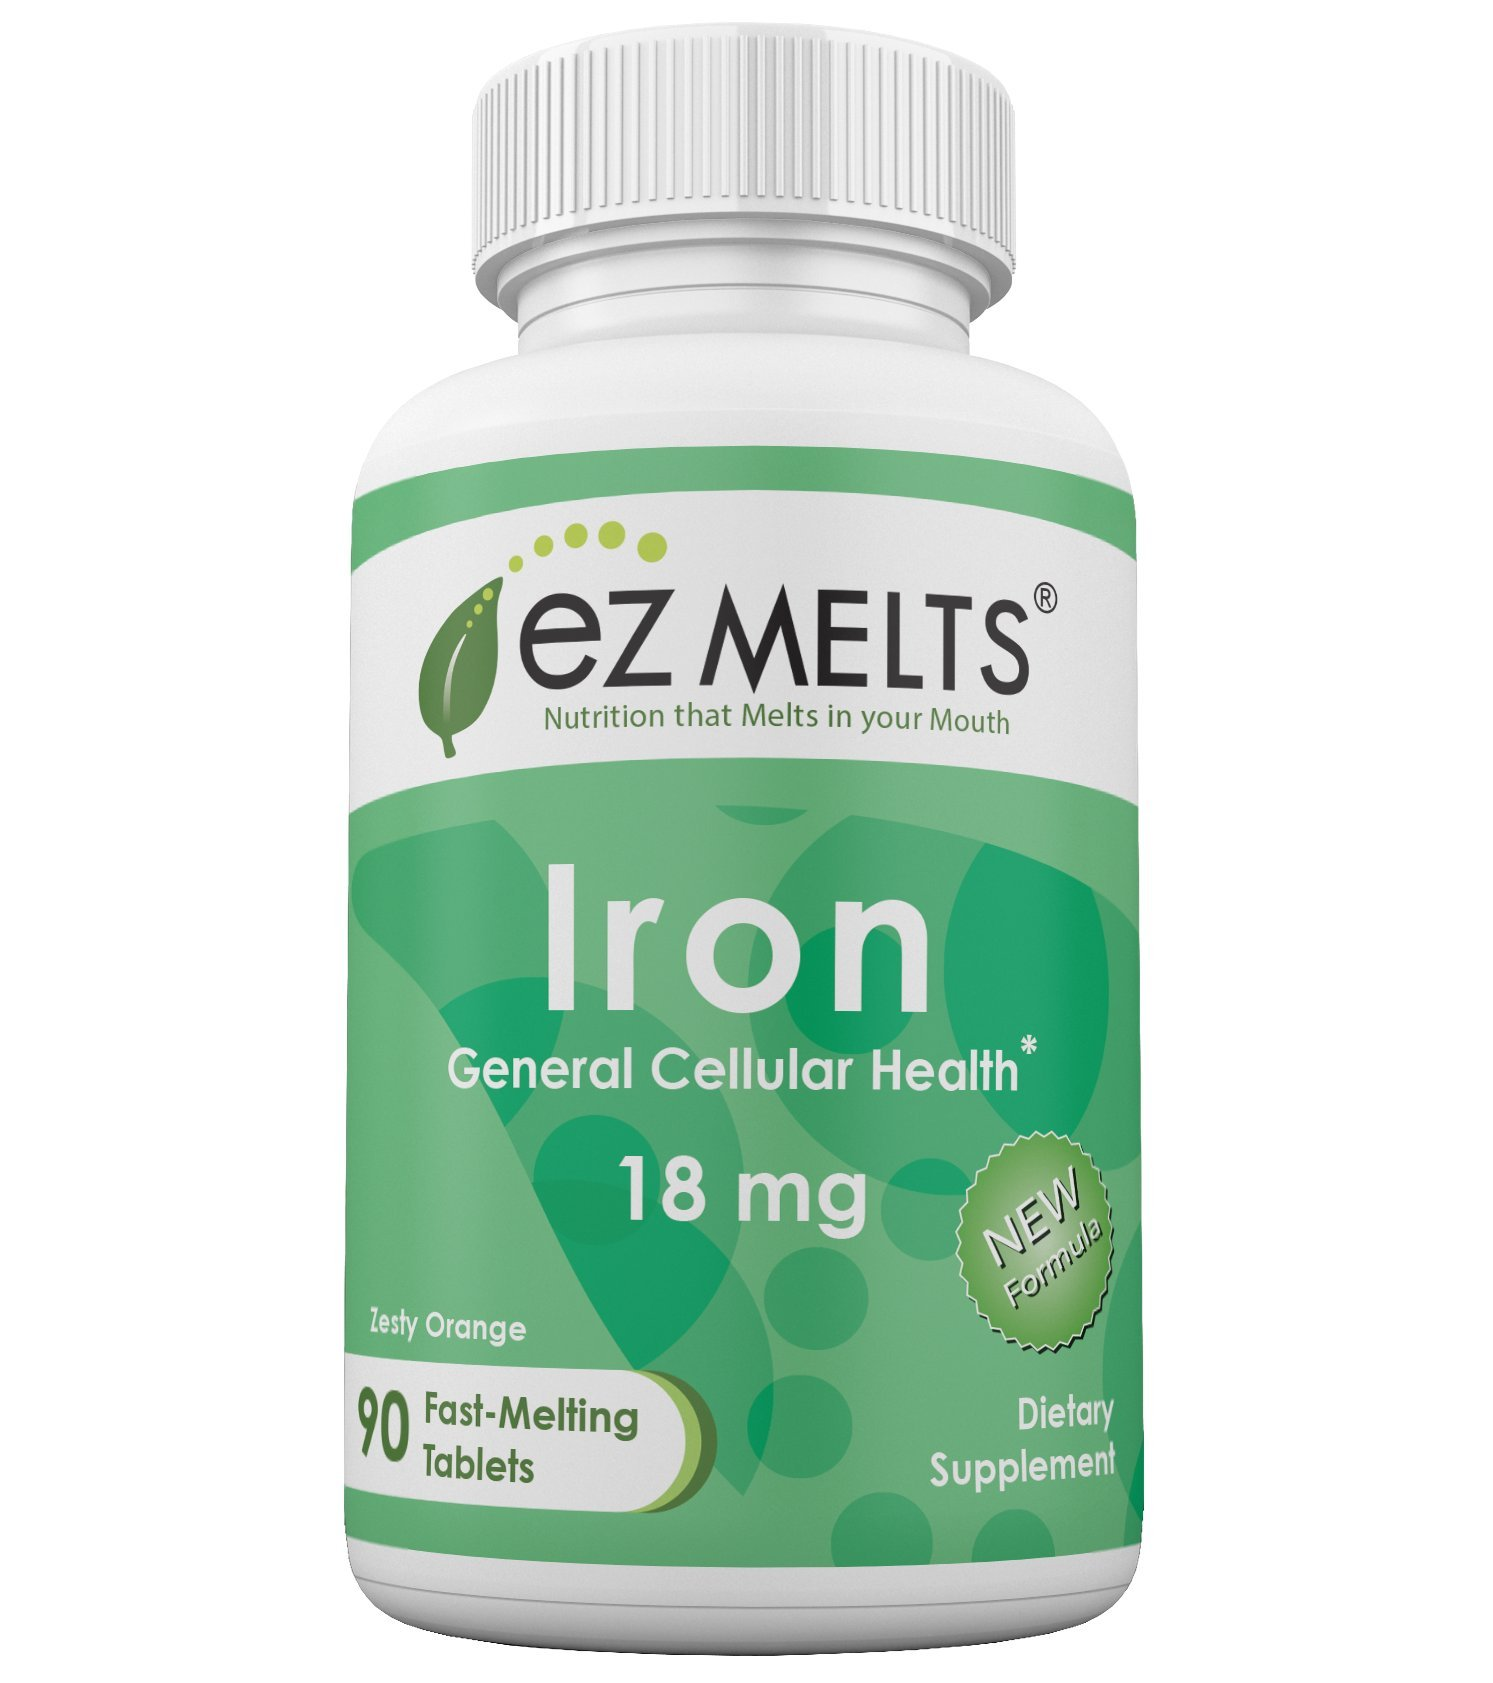 EZ Melts Iron, 18 mg, Dissolvable Vitamins, Vegan, Zero Sugar, Natural Orange Flavor, 90 Fast Melting Tablets, Carbonyl Elemental Iron Supplement